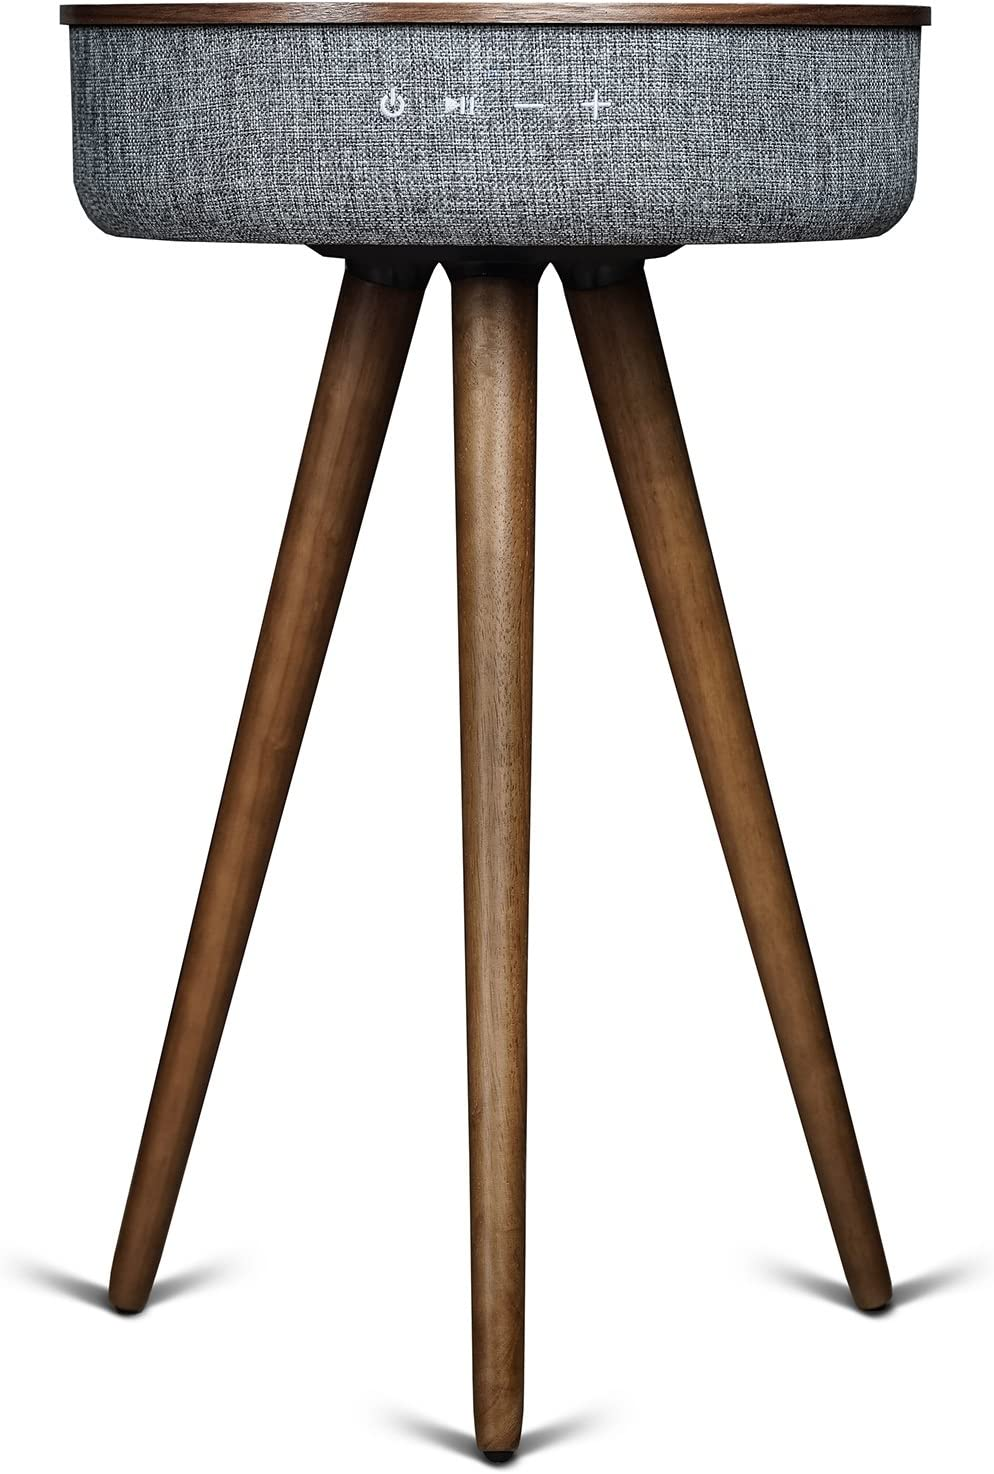 Sierra Modern Home Studio Smart Table with Built in 360° Bluetooth Speaker and Wireless Qi Charger, Dark Oak Wood